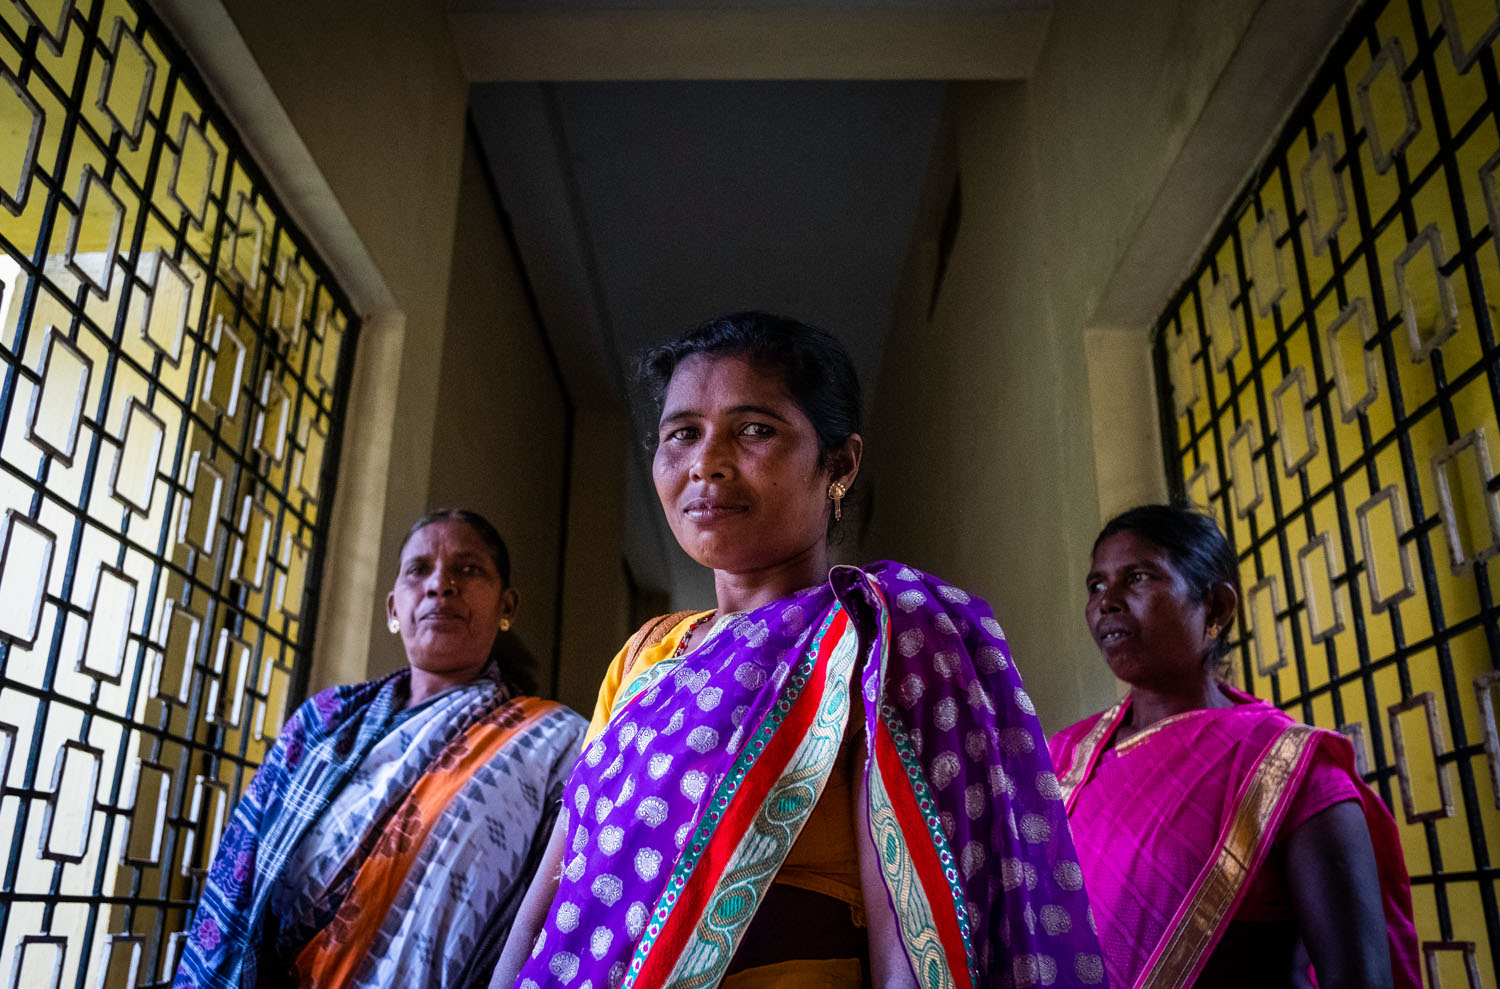 A group of Christian widows whose husbands were murdered for their faith during the Summer of 2008 meet together regularly in Kandhamal, India. Together they mourn, pray, and encourage each other to move forward in their relationships with Jesus Christ. Kandhamal, India. 2018. Photo: John Fredricks